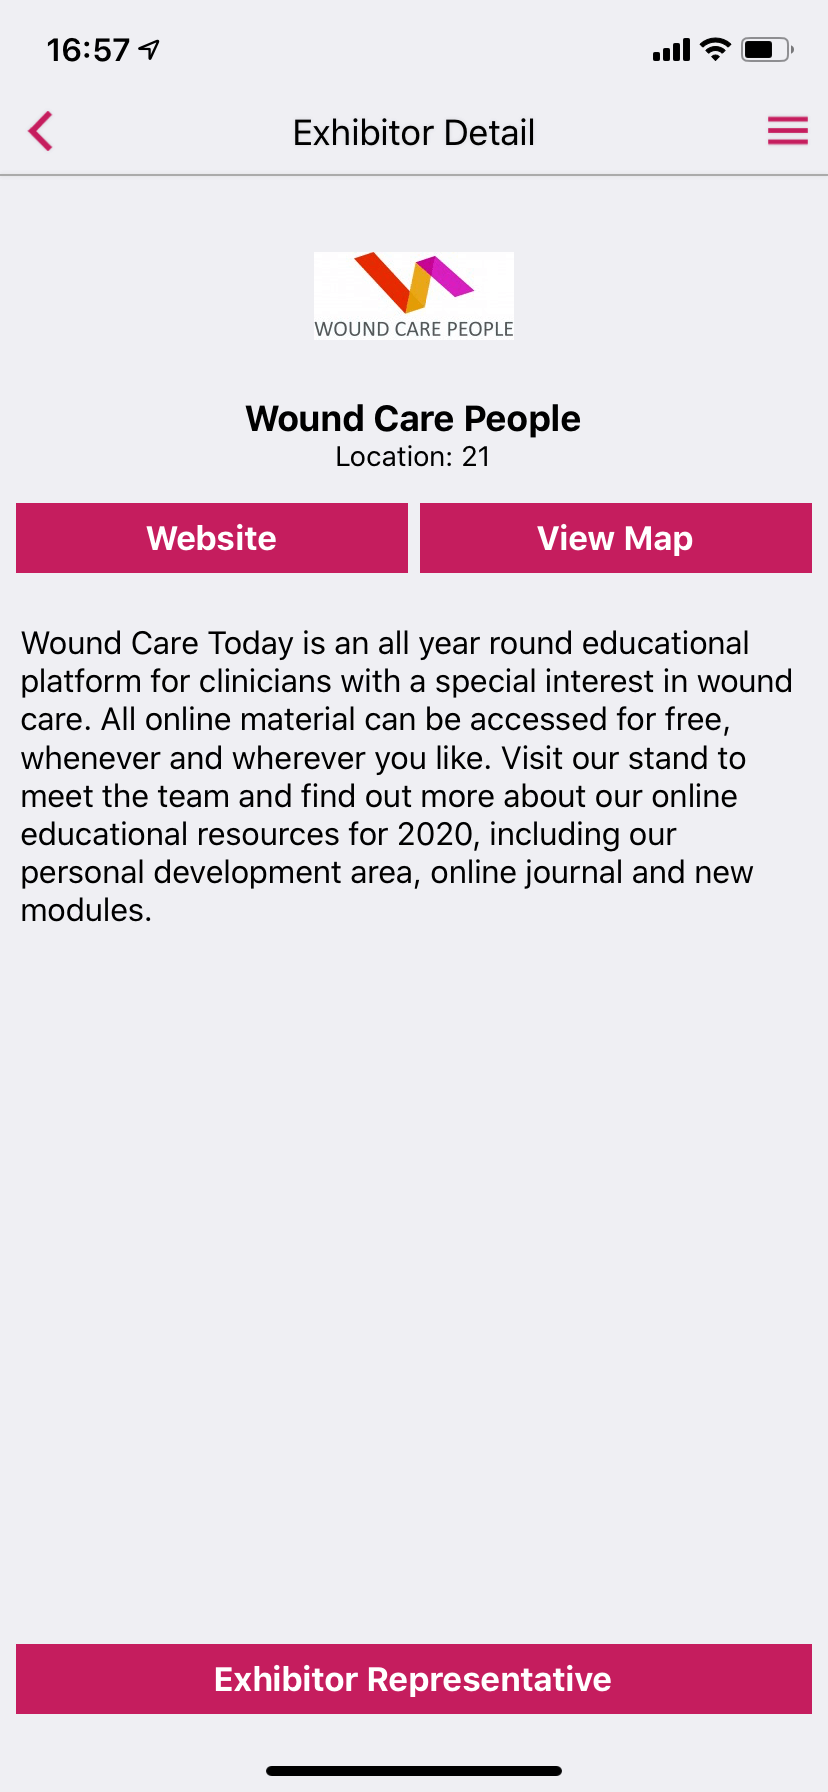 Exhibitor profile screen from an event app by VenuIQ